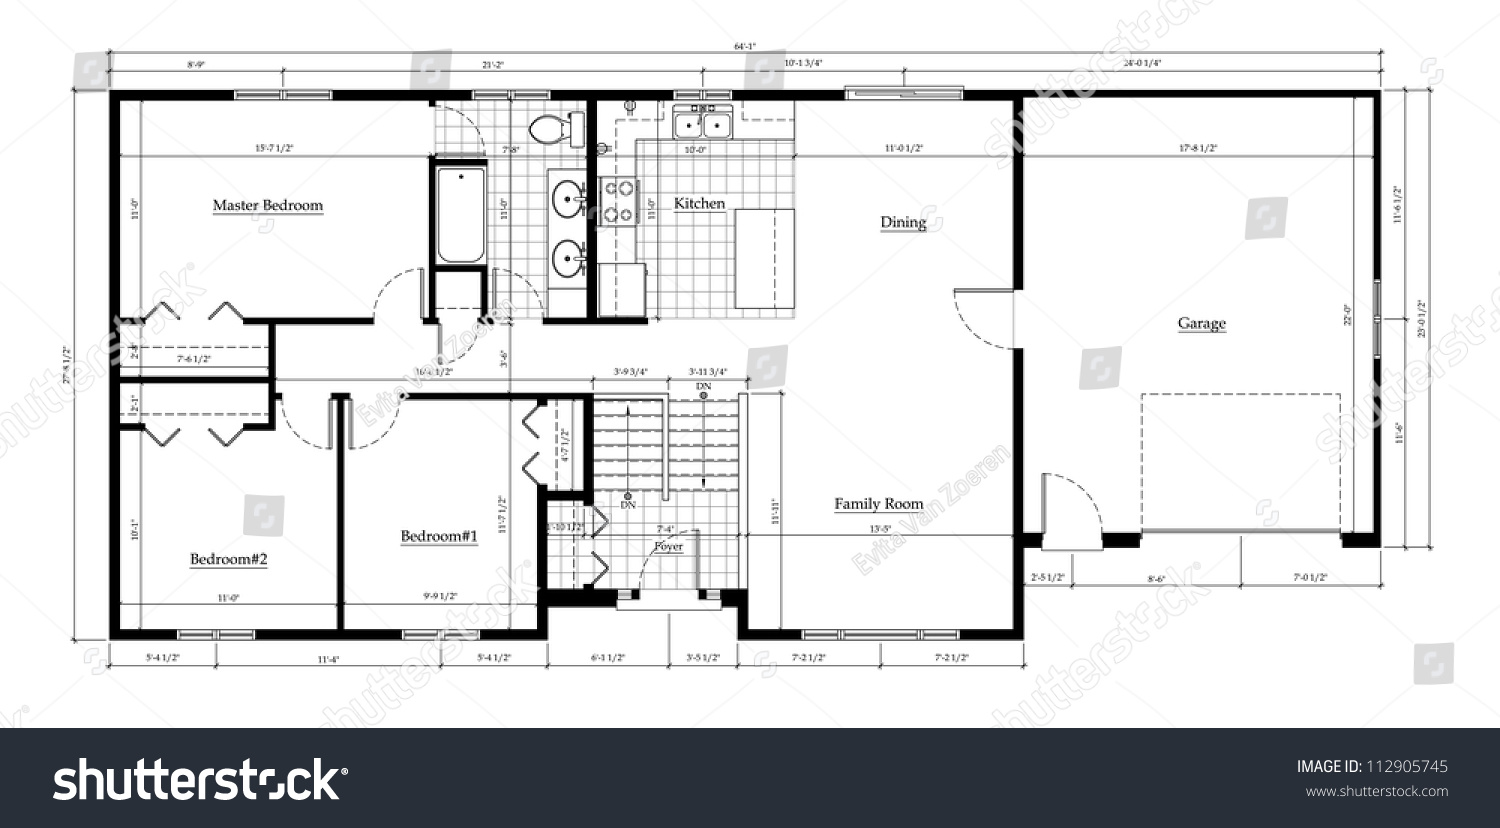 Split level house floor plan with room names and for Stock home plans